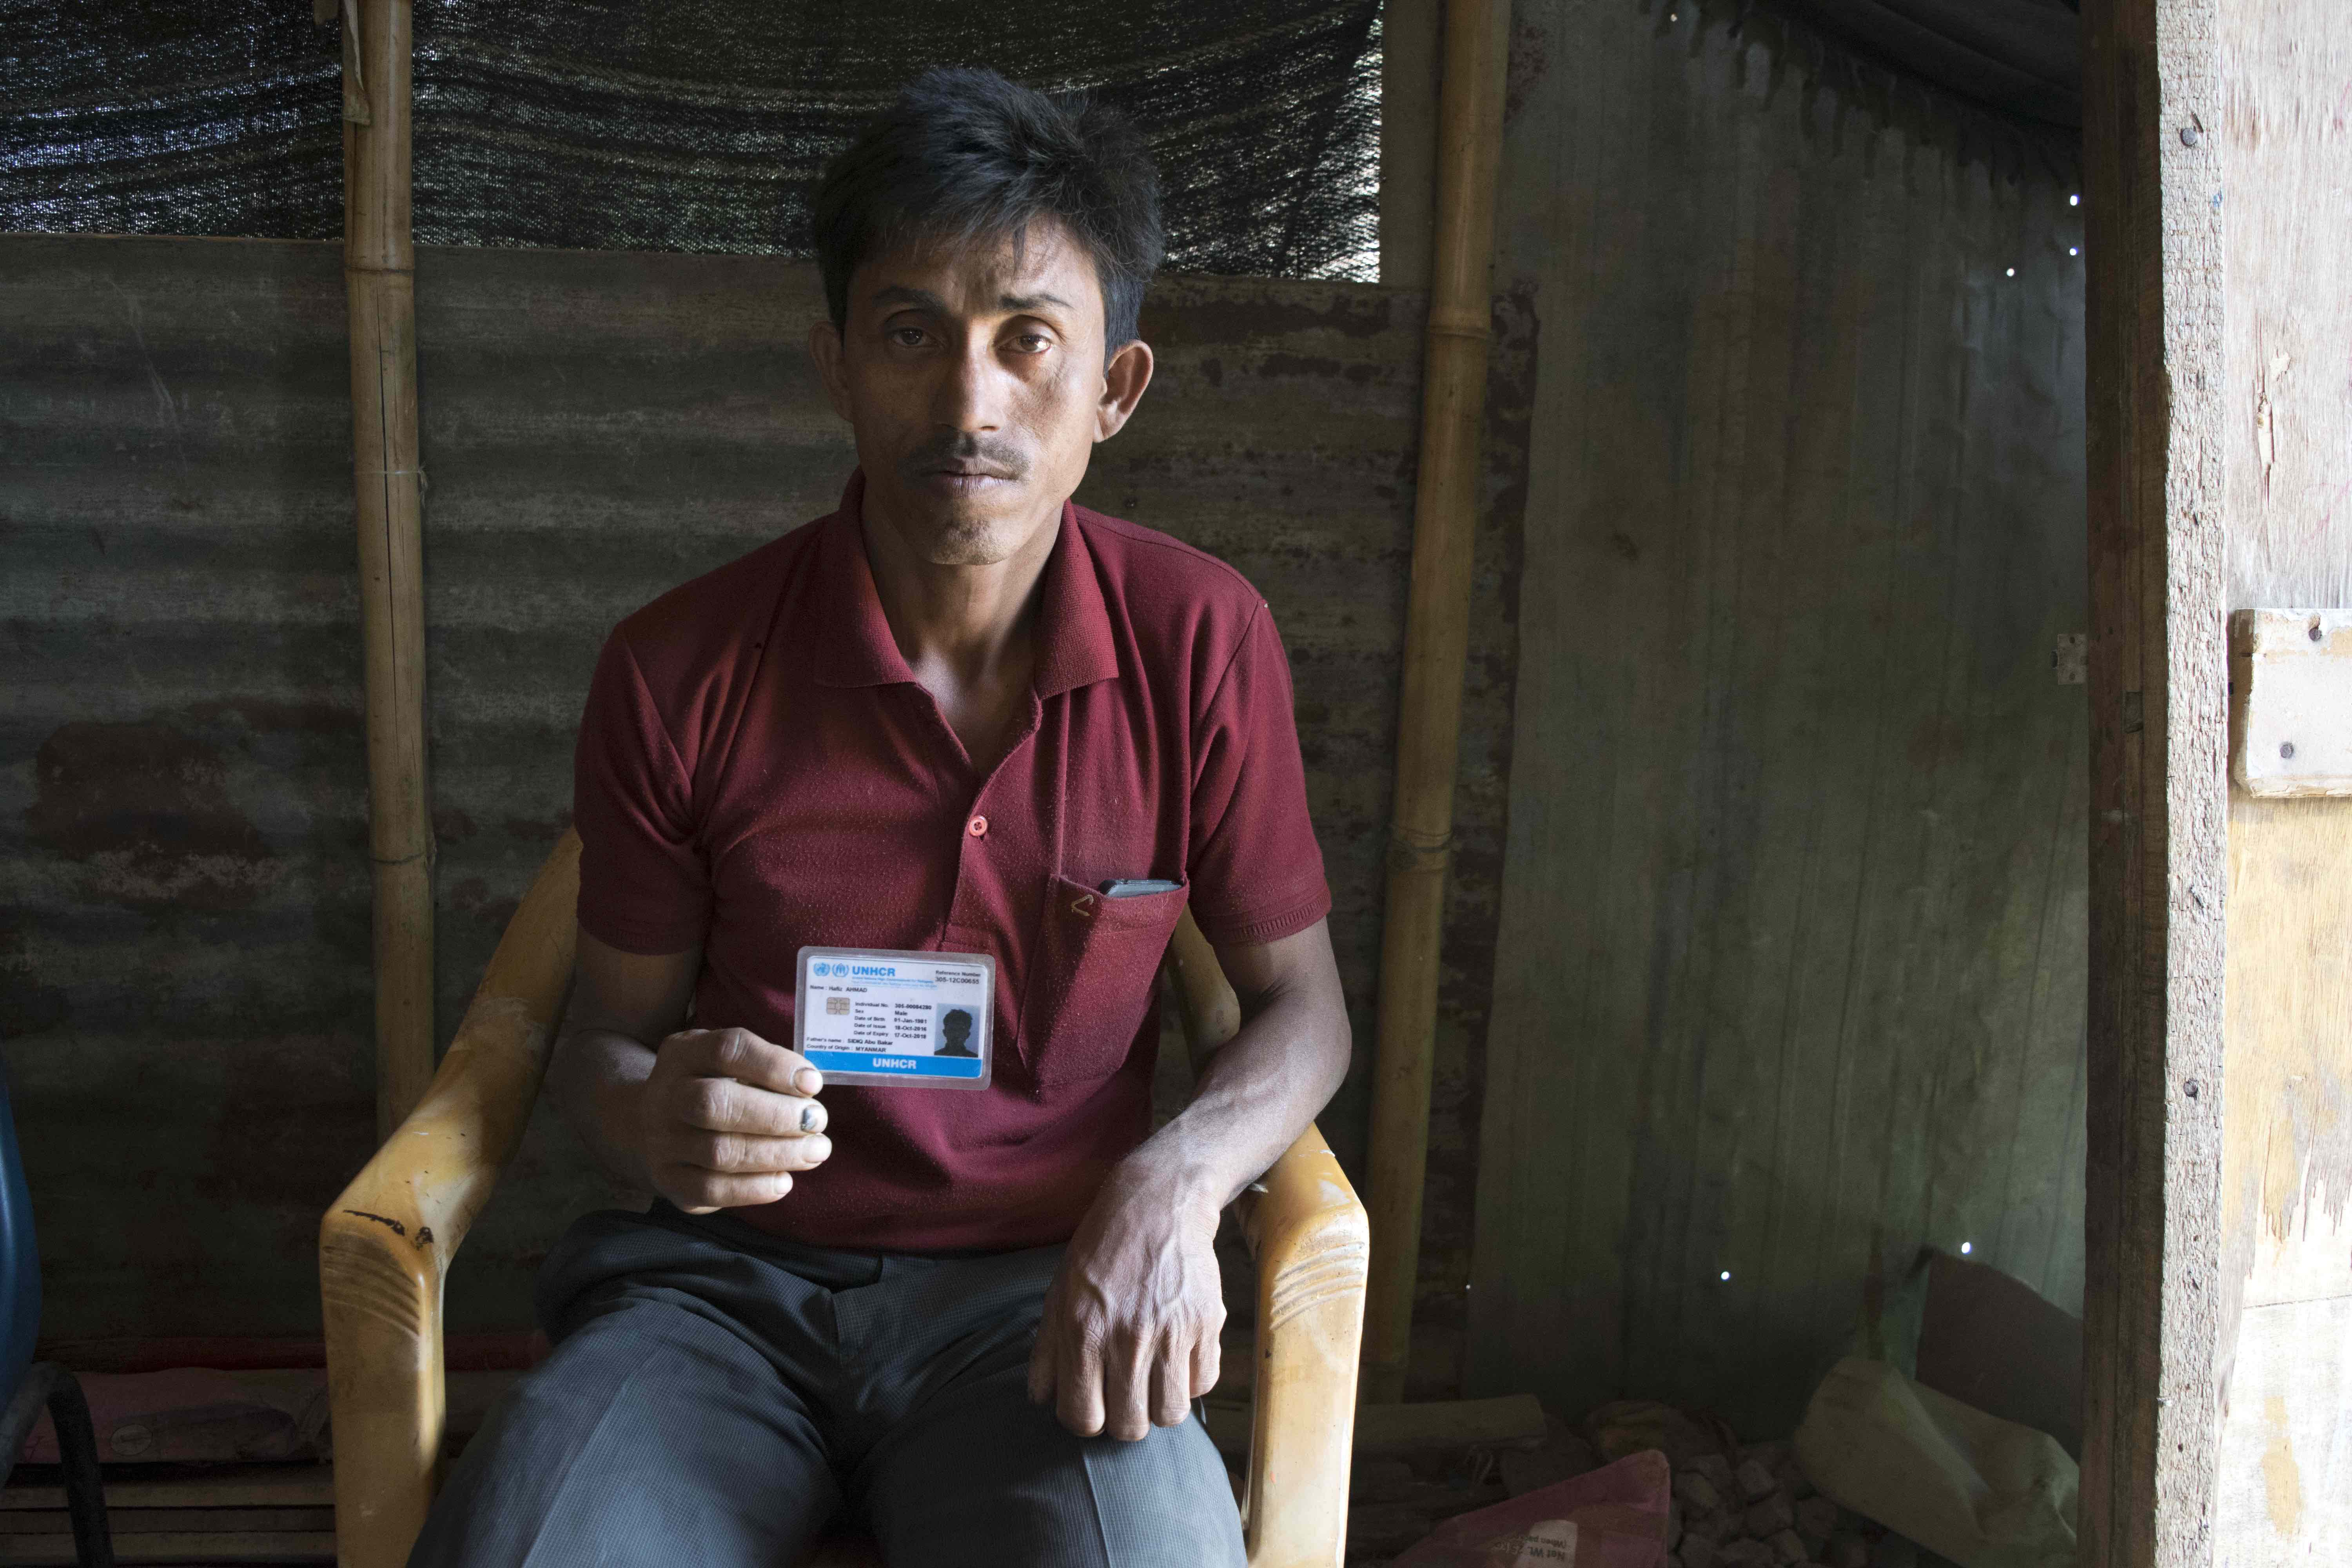 Hafij Ahmad, 35, holds his UNHCR refugee card. The identification card prevents deportation and allows refugees and aslyum-seekers to apply for a long-term visa of one-year duration, which can be renewed each year. The long-term visa potentially helps in securing employment and higher education. Credit: Meagan Clark